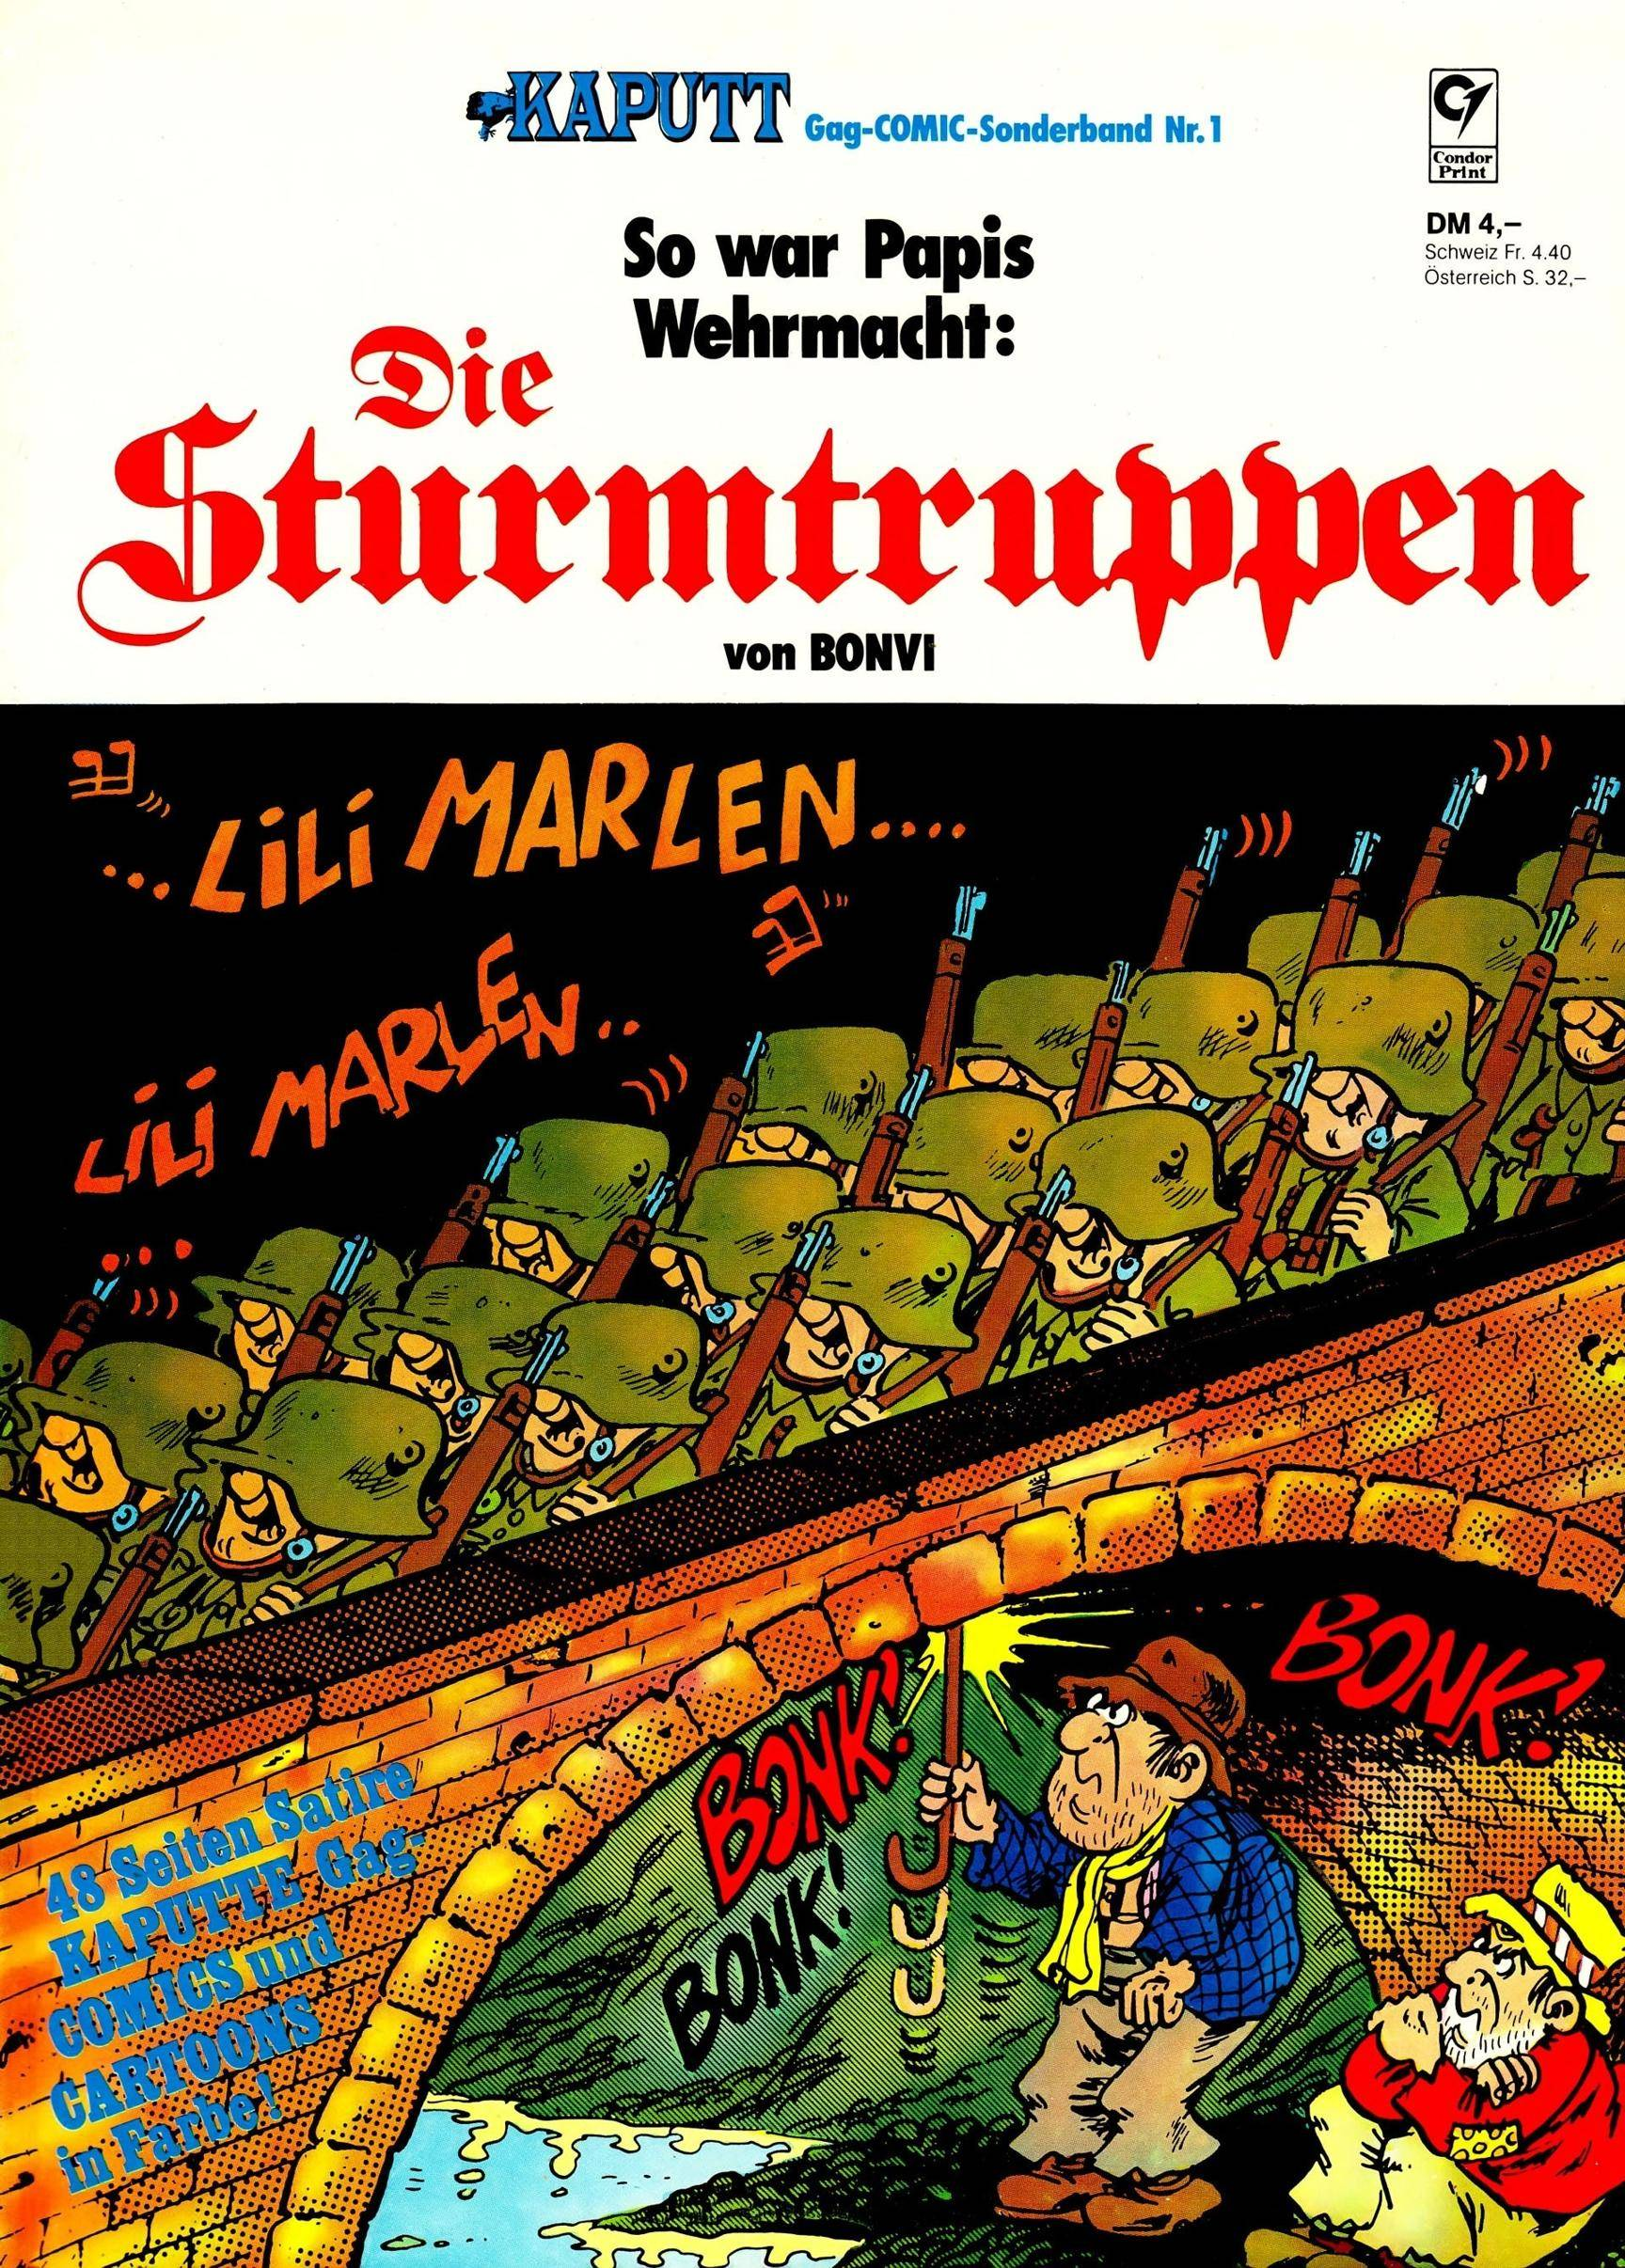 Die Sturmtruppen 1 cbr part01 rar 8004 MB usenet space cowboys online